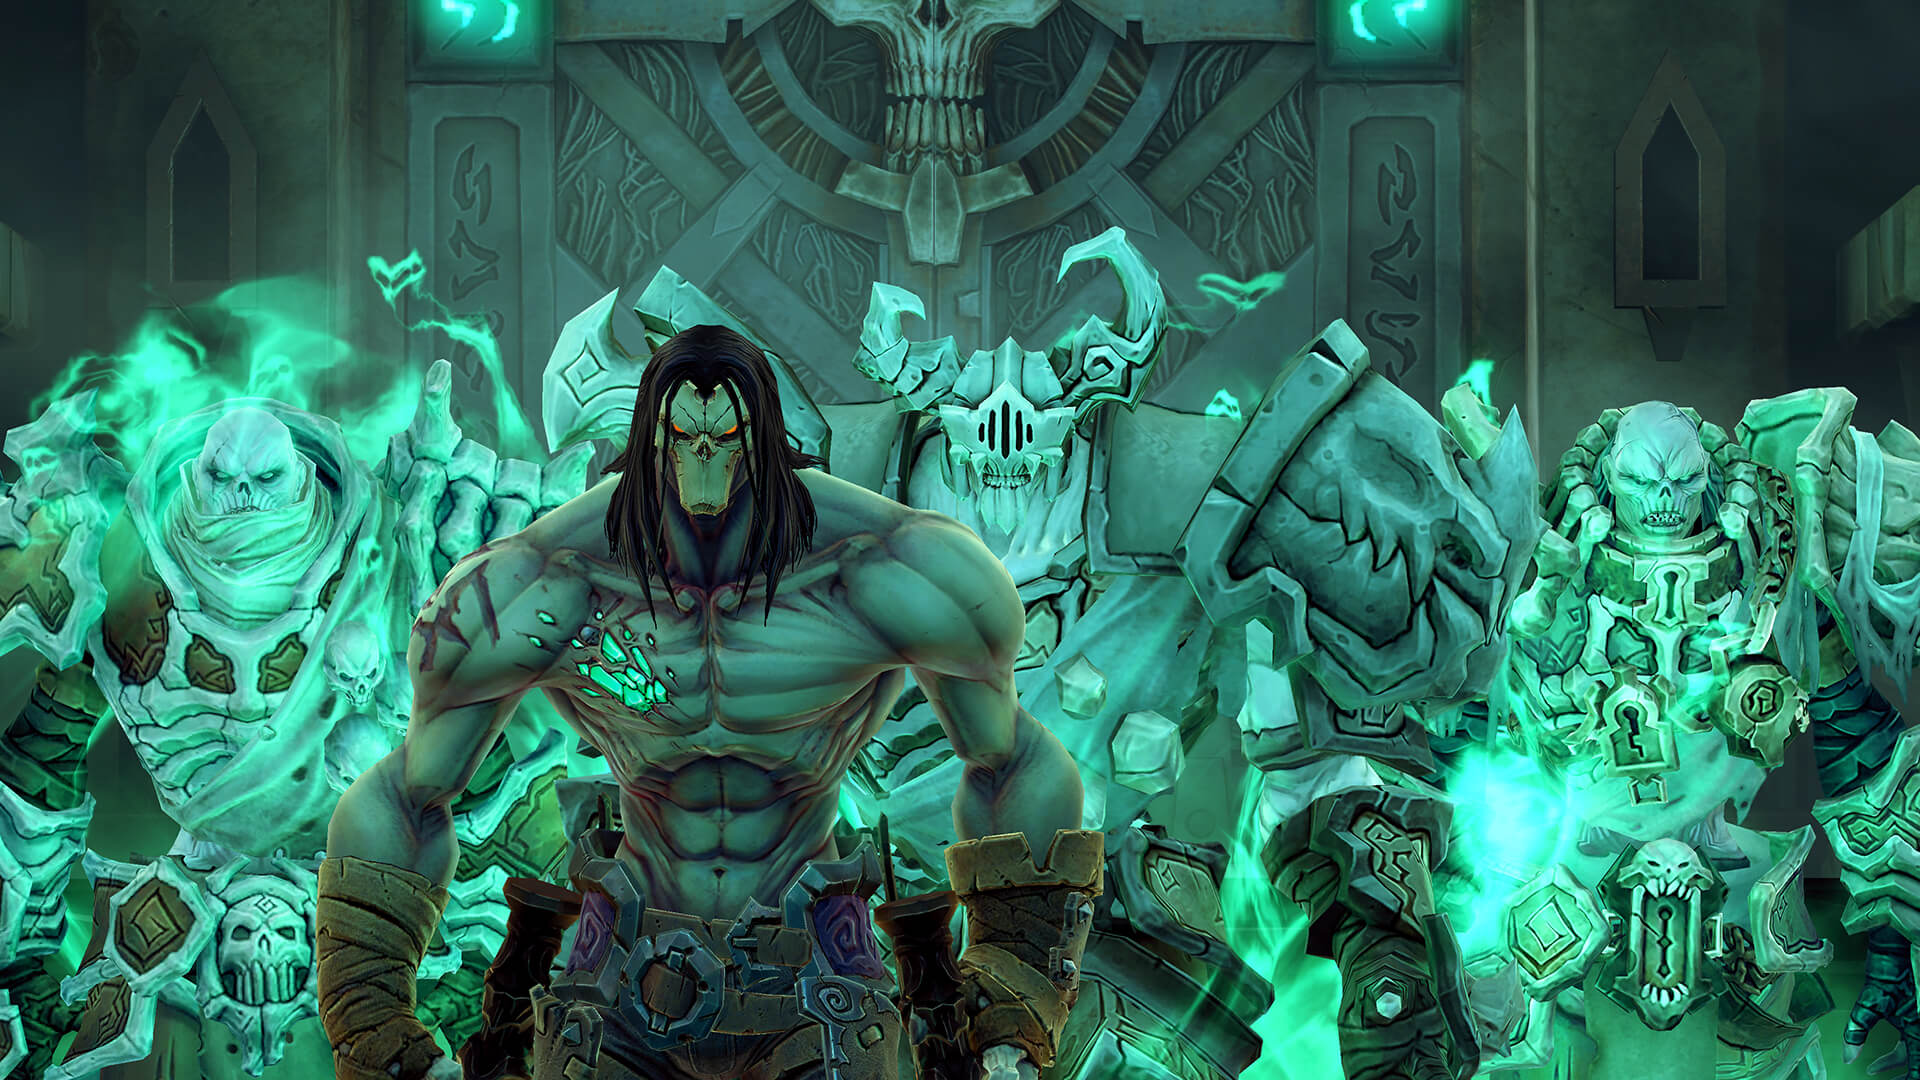 darksiders ii: deathinitive edition for ps4, xb1 reviews - opencritic